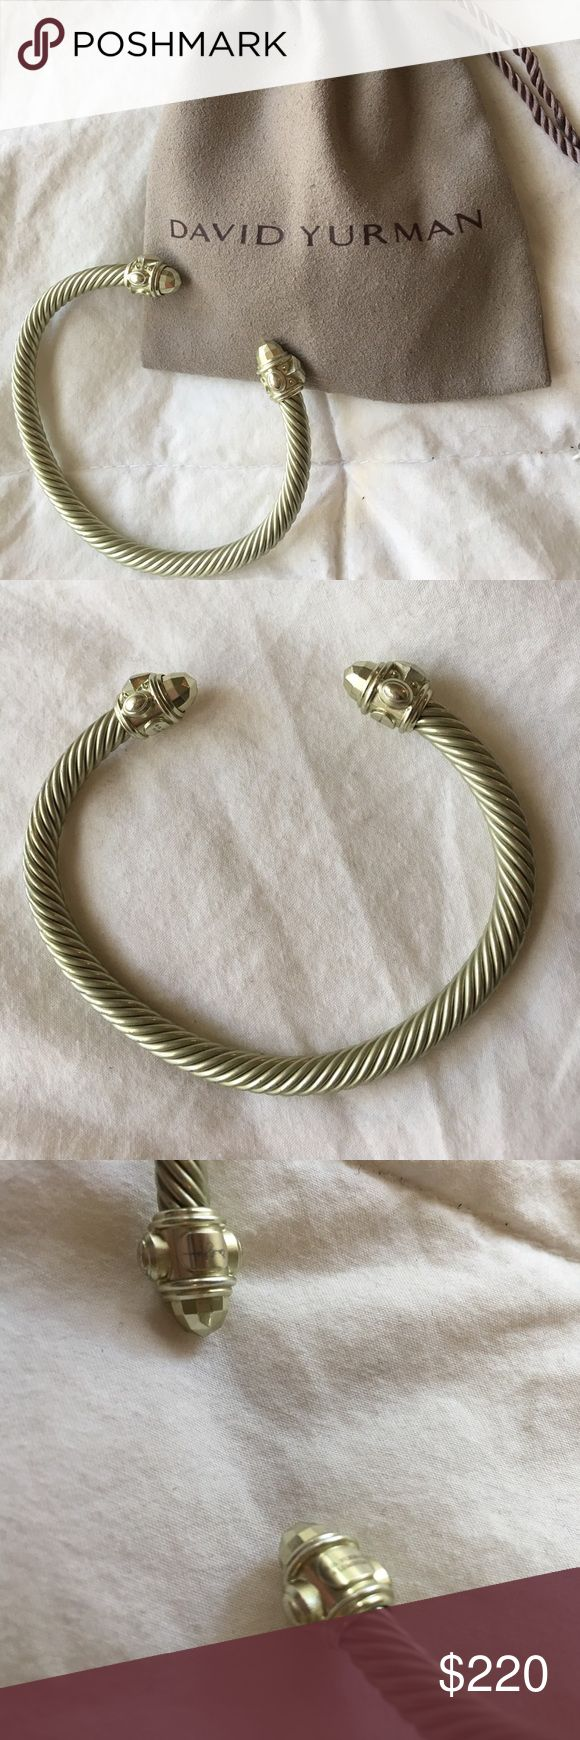 Limited Edition Aluminum David Yurman Bracelet ***FINAL PRICE DROP***Limited Edition aluminum David Yurman bracelet. The color is celedon, a light green. It is in excellent used condition. No major wear or tear. Comes with David Yurman pouch. No trades. This is the best prices on Poshmark for this style of bracelet.  Item listed on other sites I will delete as soon as it sells. David Yurman Jewelry Bracelets